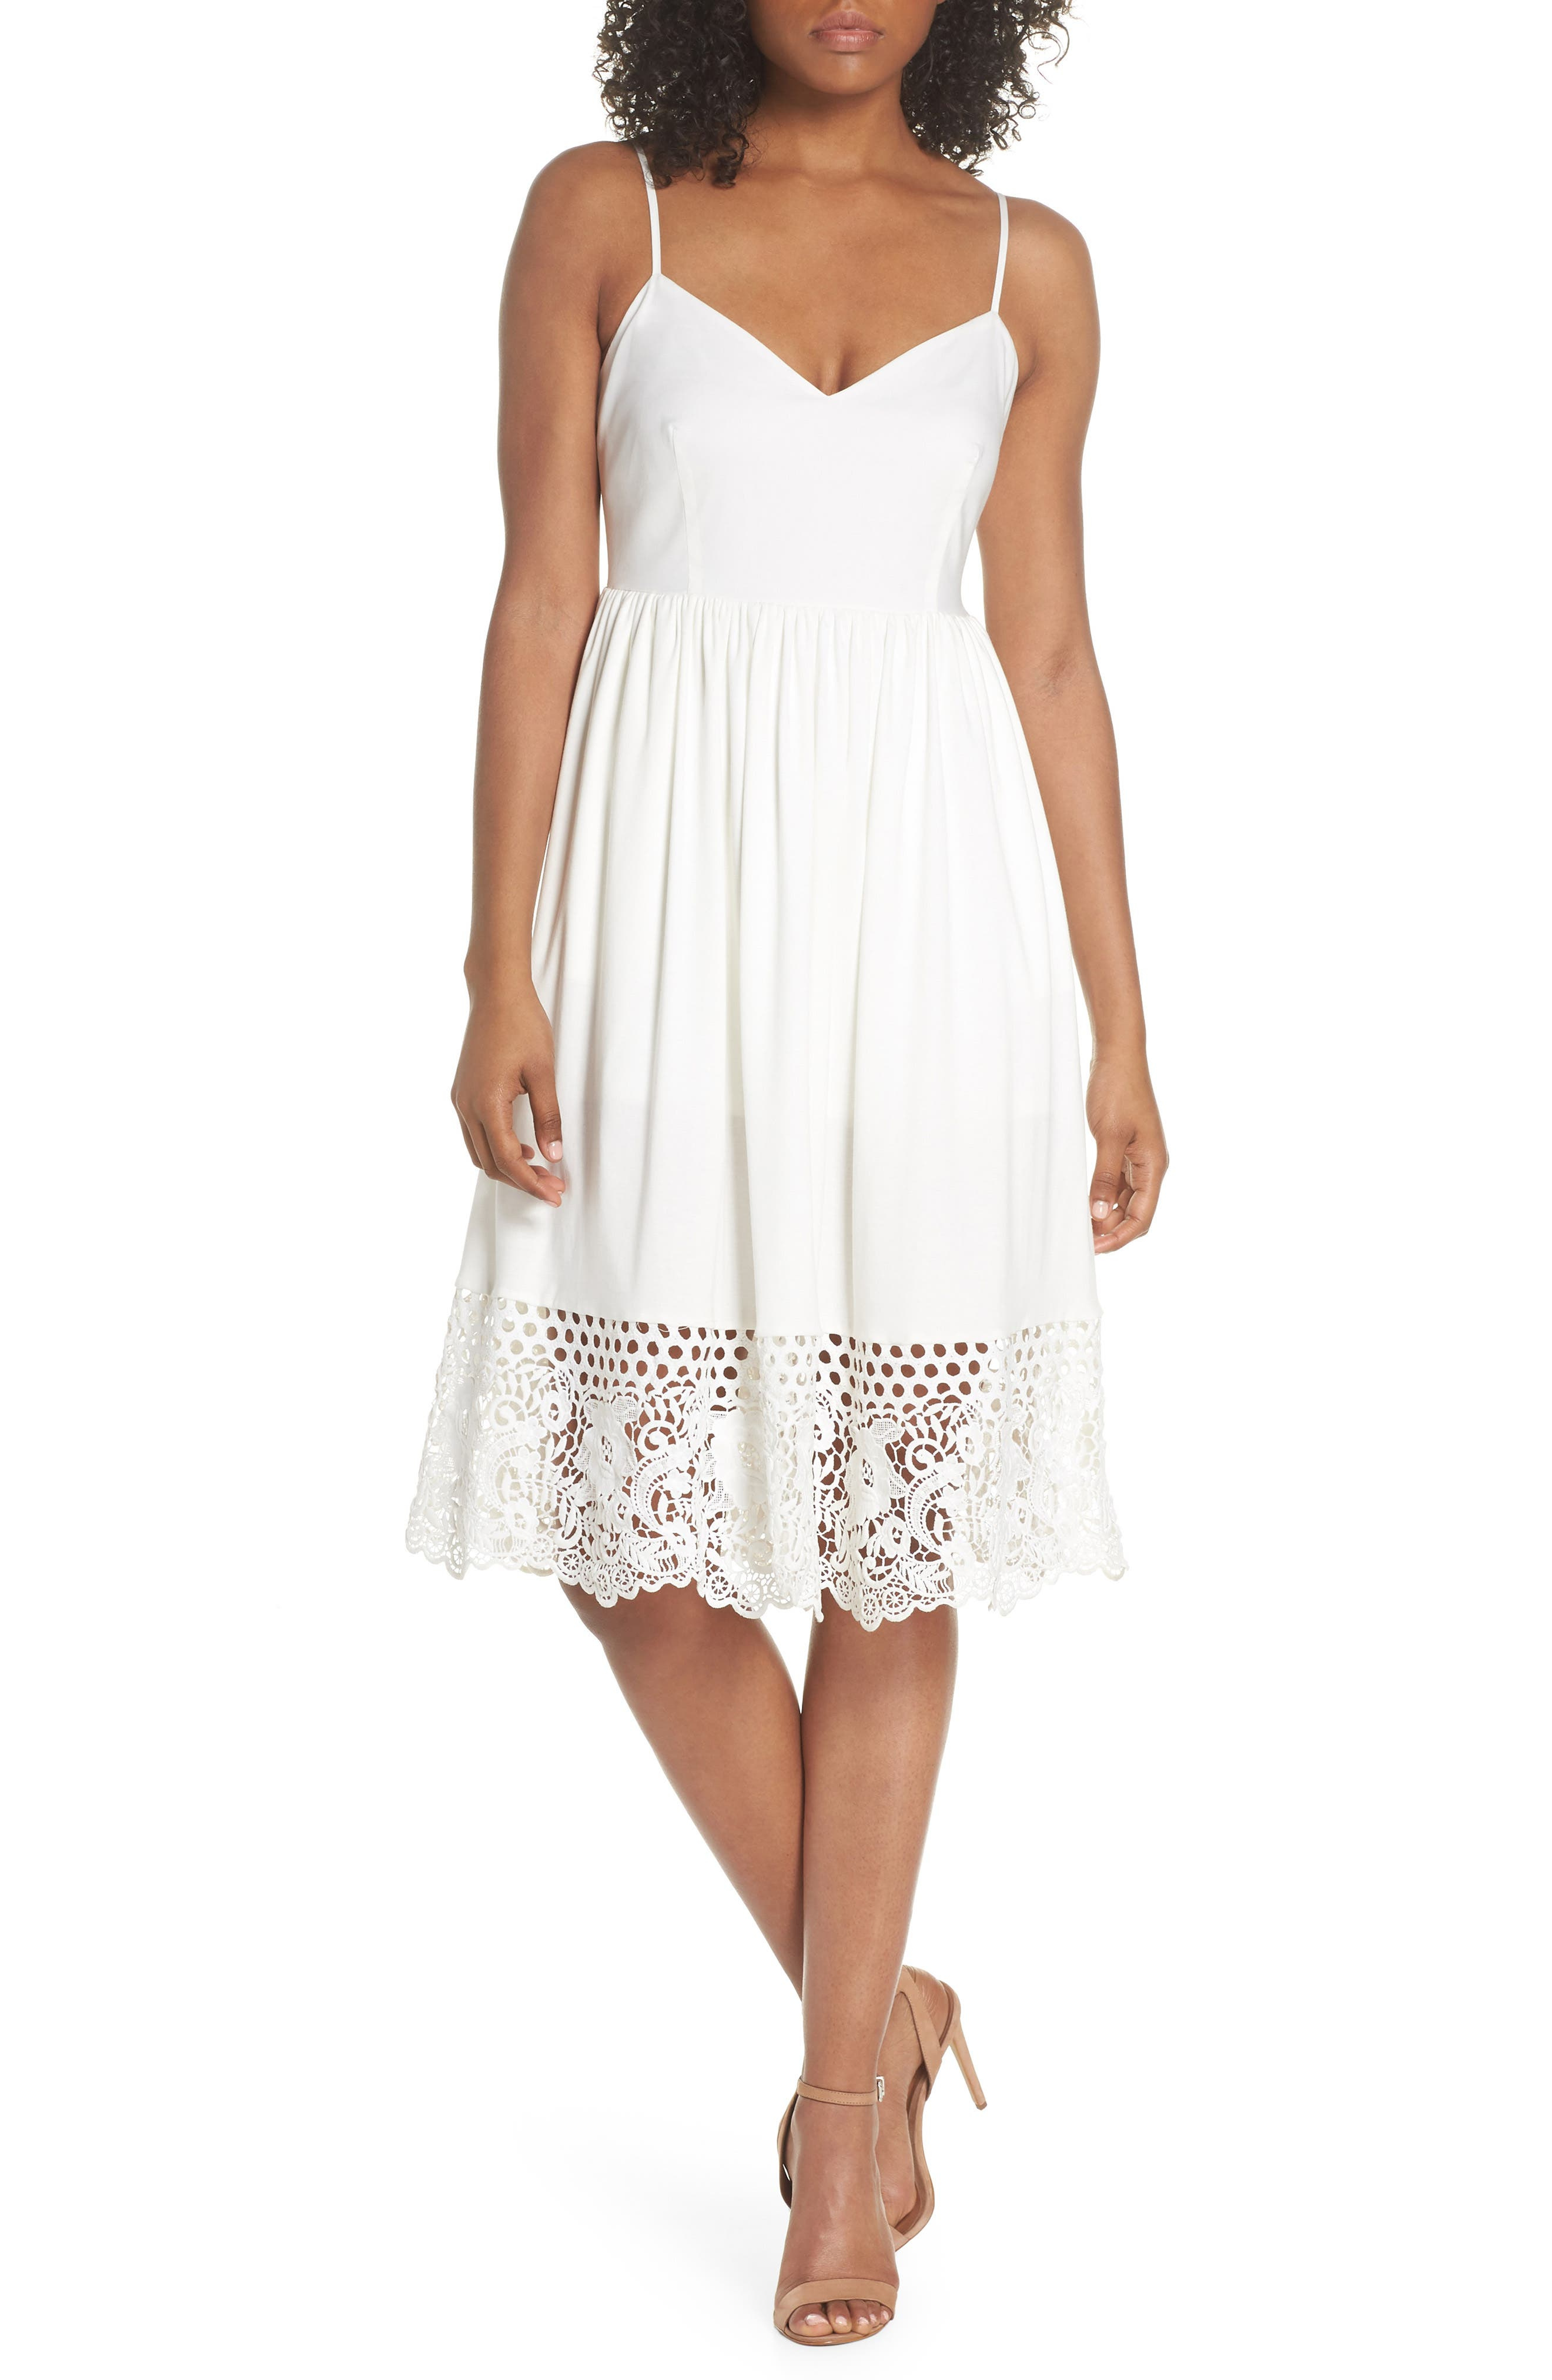 Salerno Lace Trim Jersey Dress,                         Main,                         color, Summer White/ Summer White